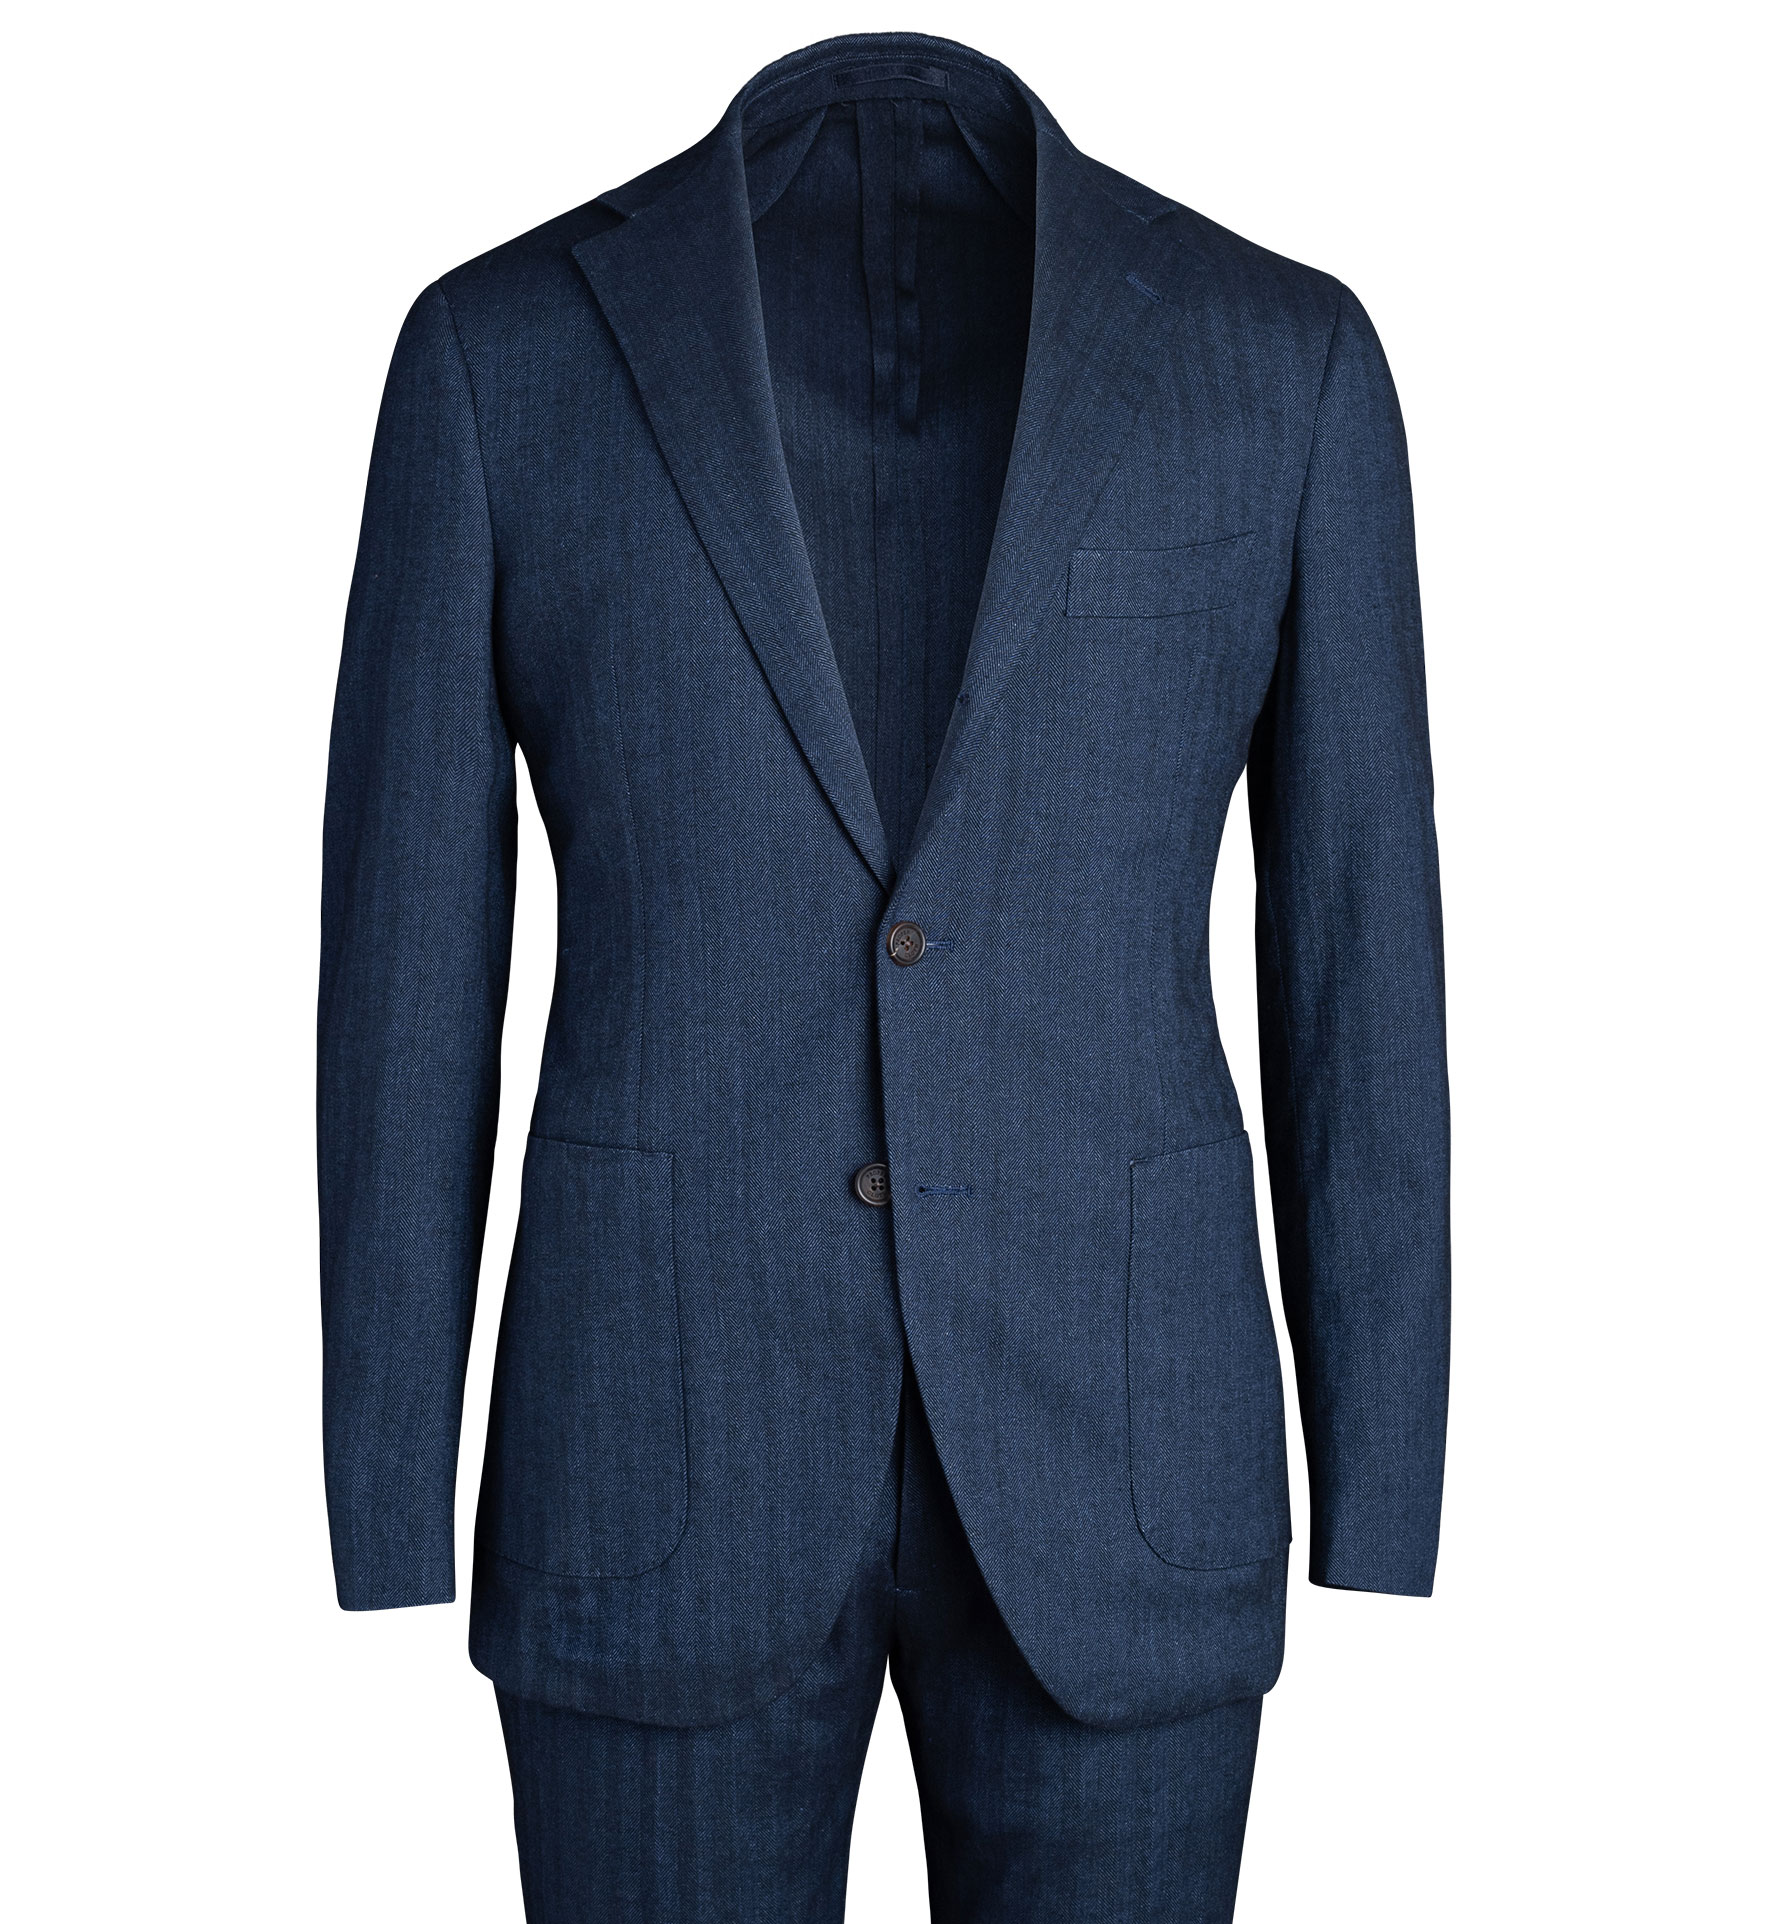 Zoom Image of Waverly Navy Cotton and Linen Stretch Herringbone Suit